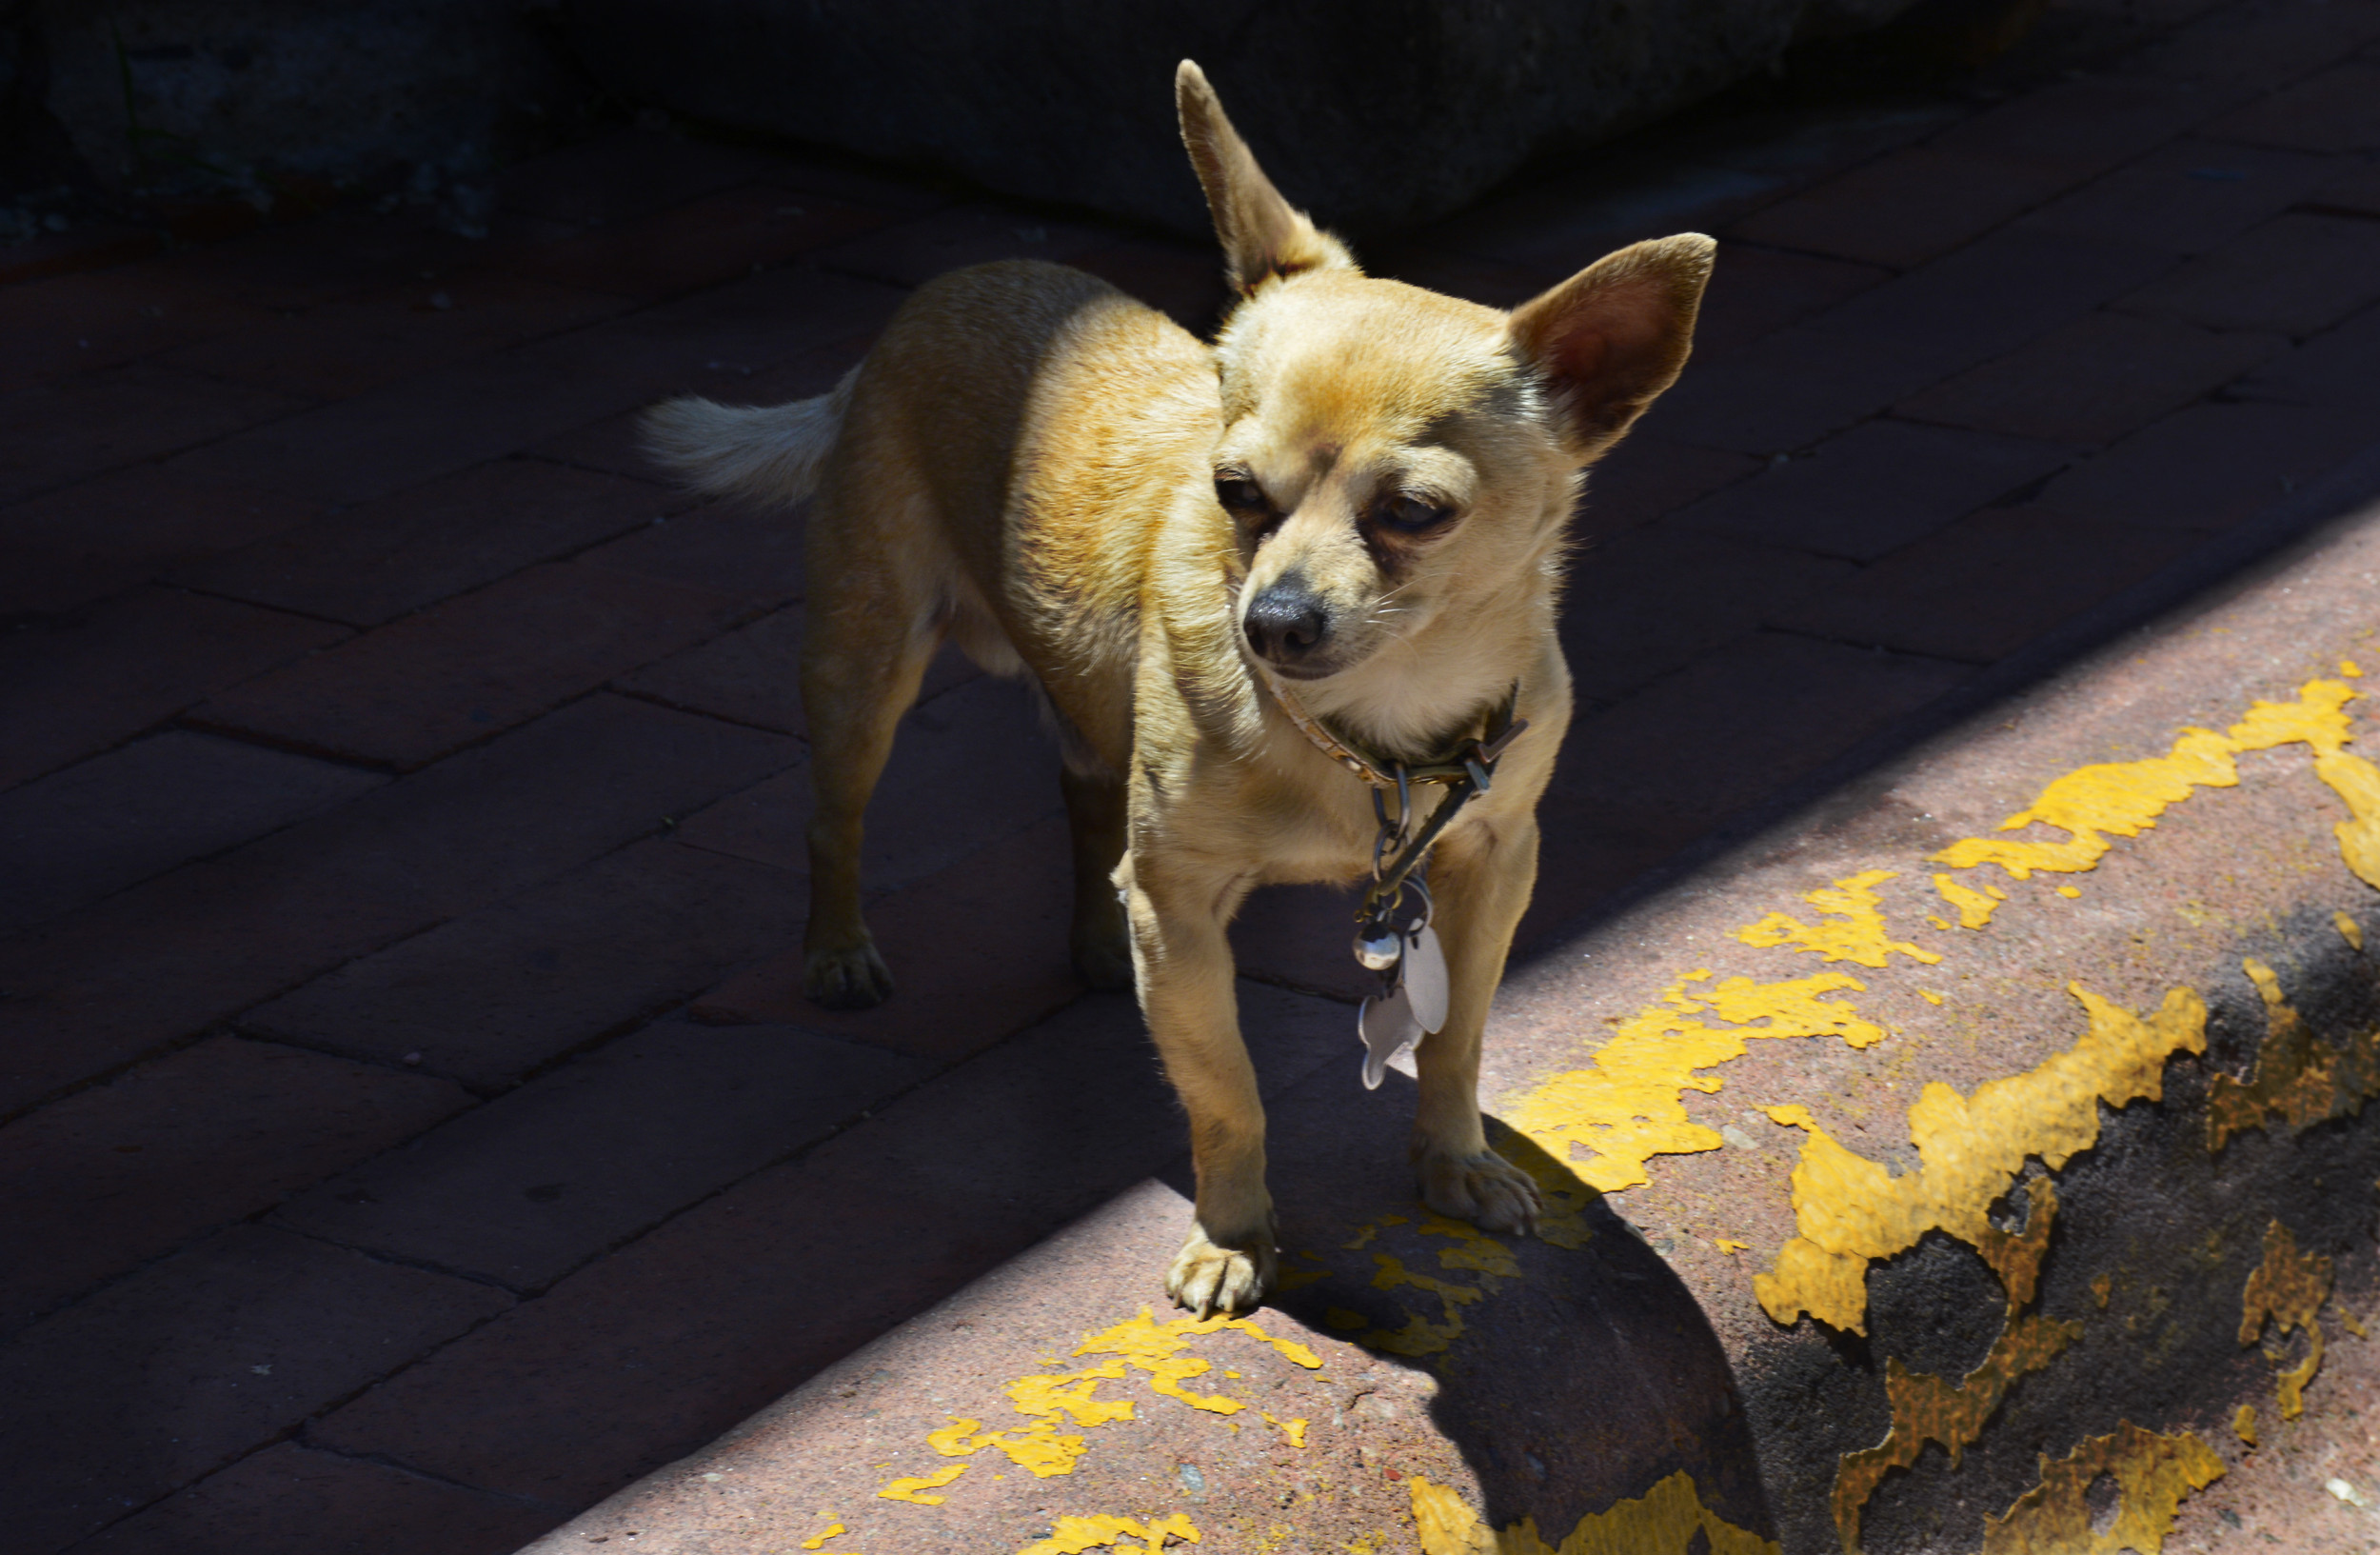 Florida Man's Pet Chihuahua Called Stink Found Charred on